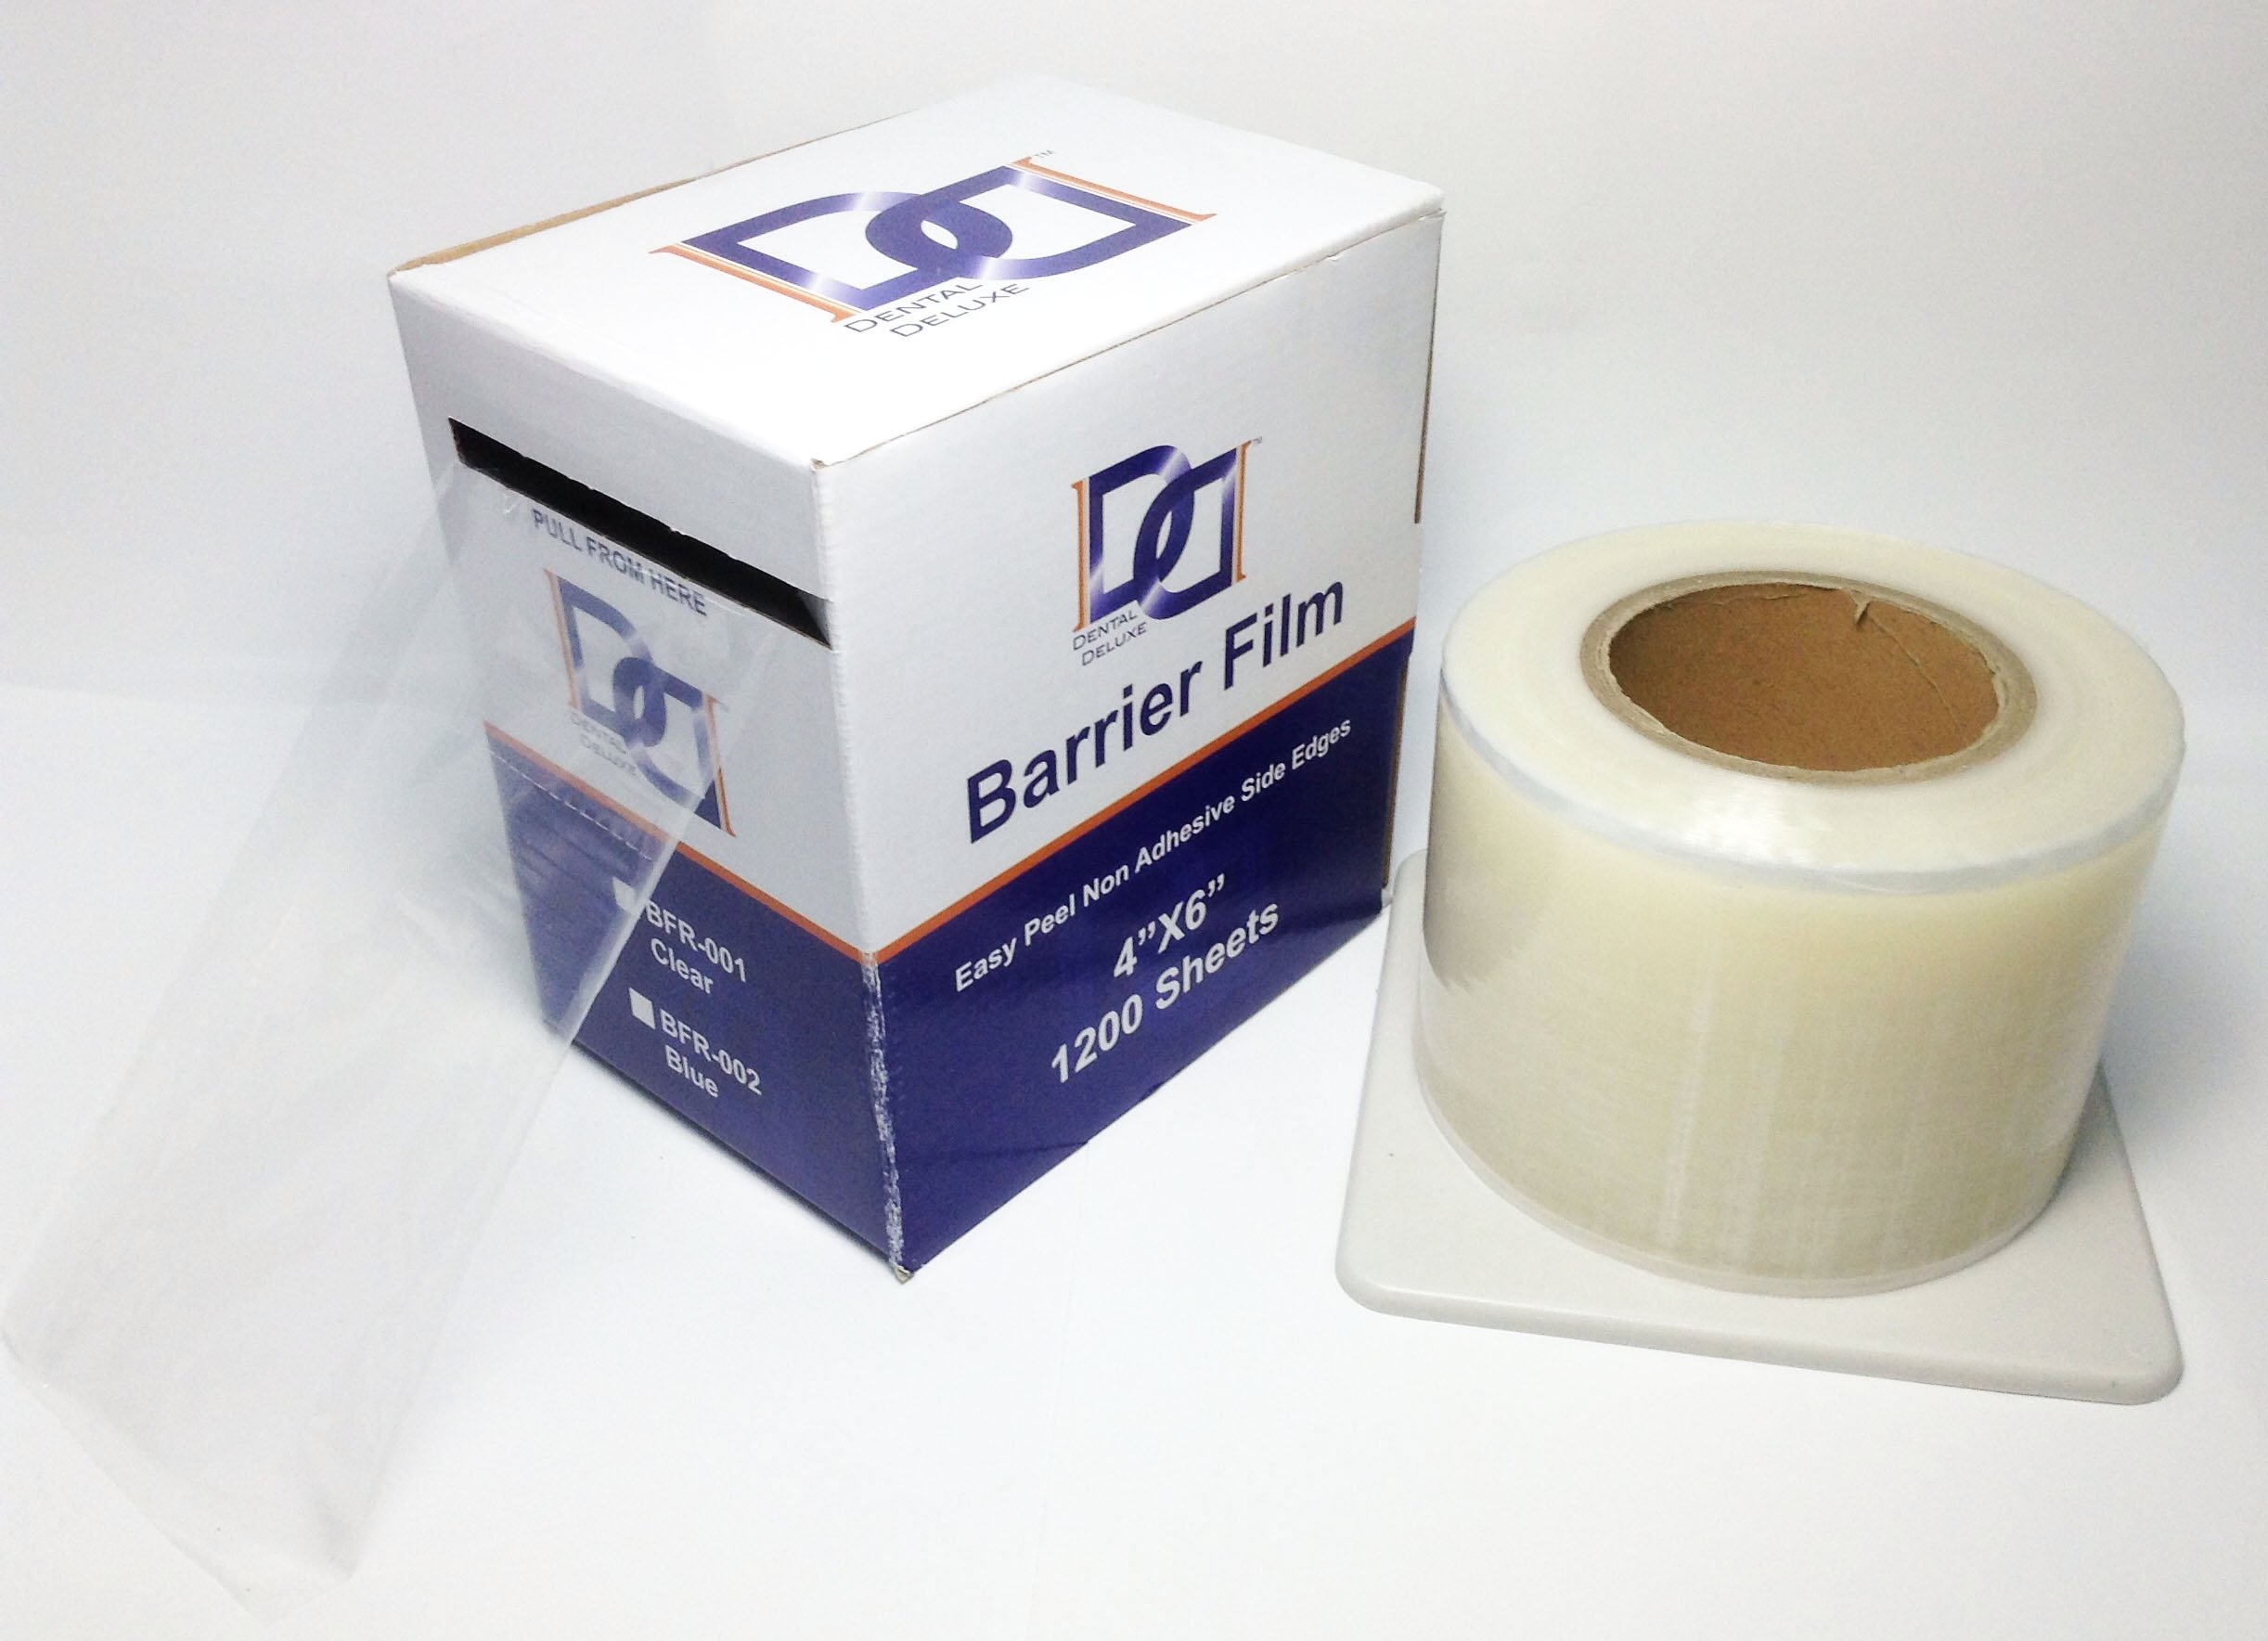 Barrier Film 1200 Sheets 4'' x 6'' Per Box (Pack of 12 Boxes) Dental Deluxe